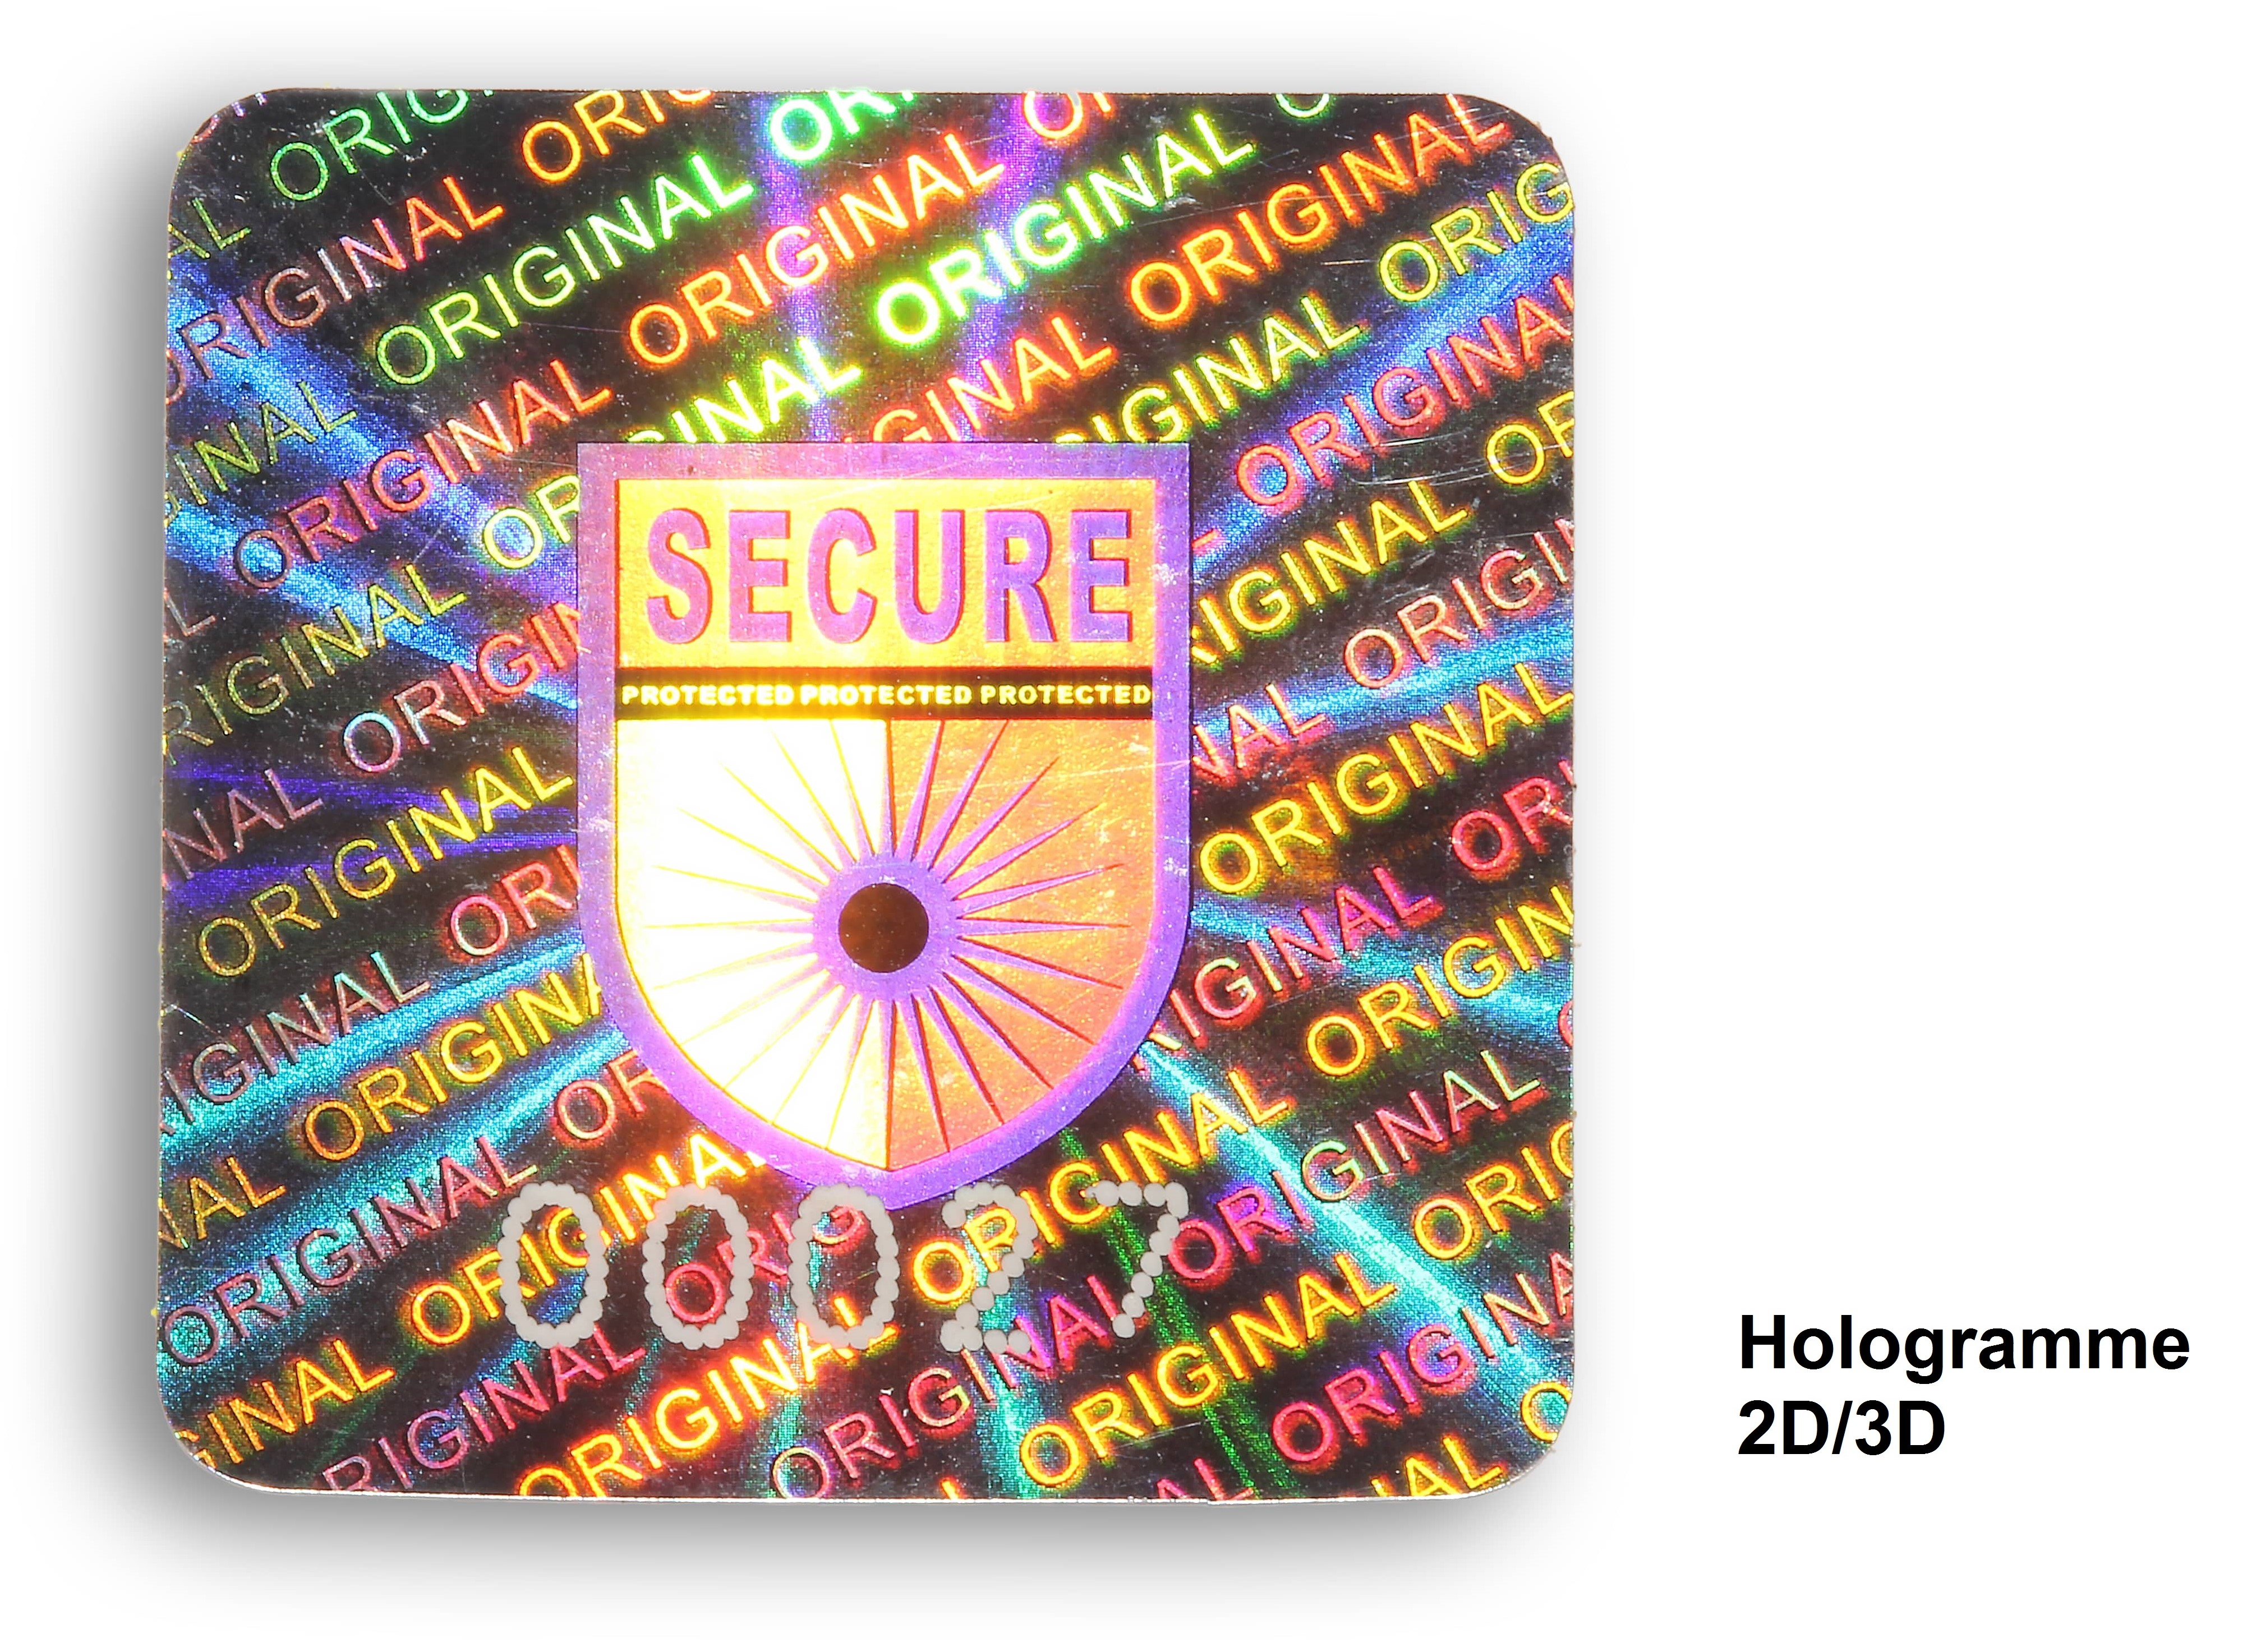 3D-hologram-label-adhesive-holographic-label